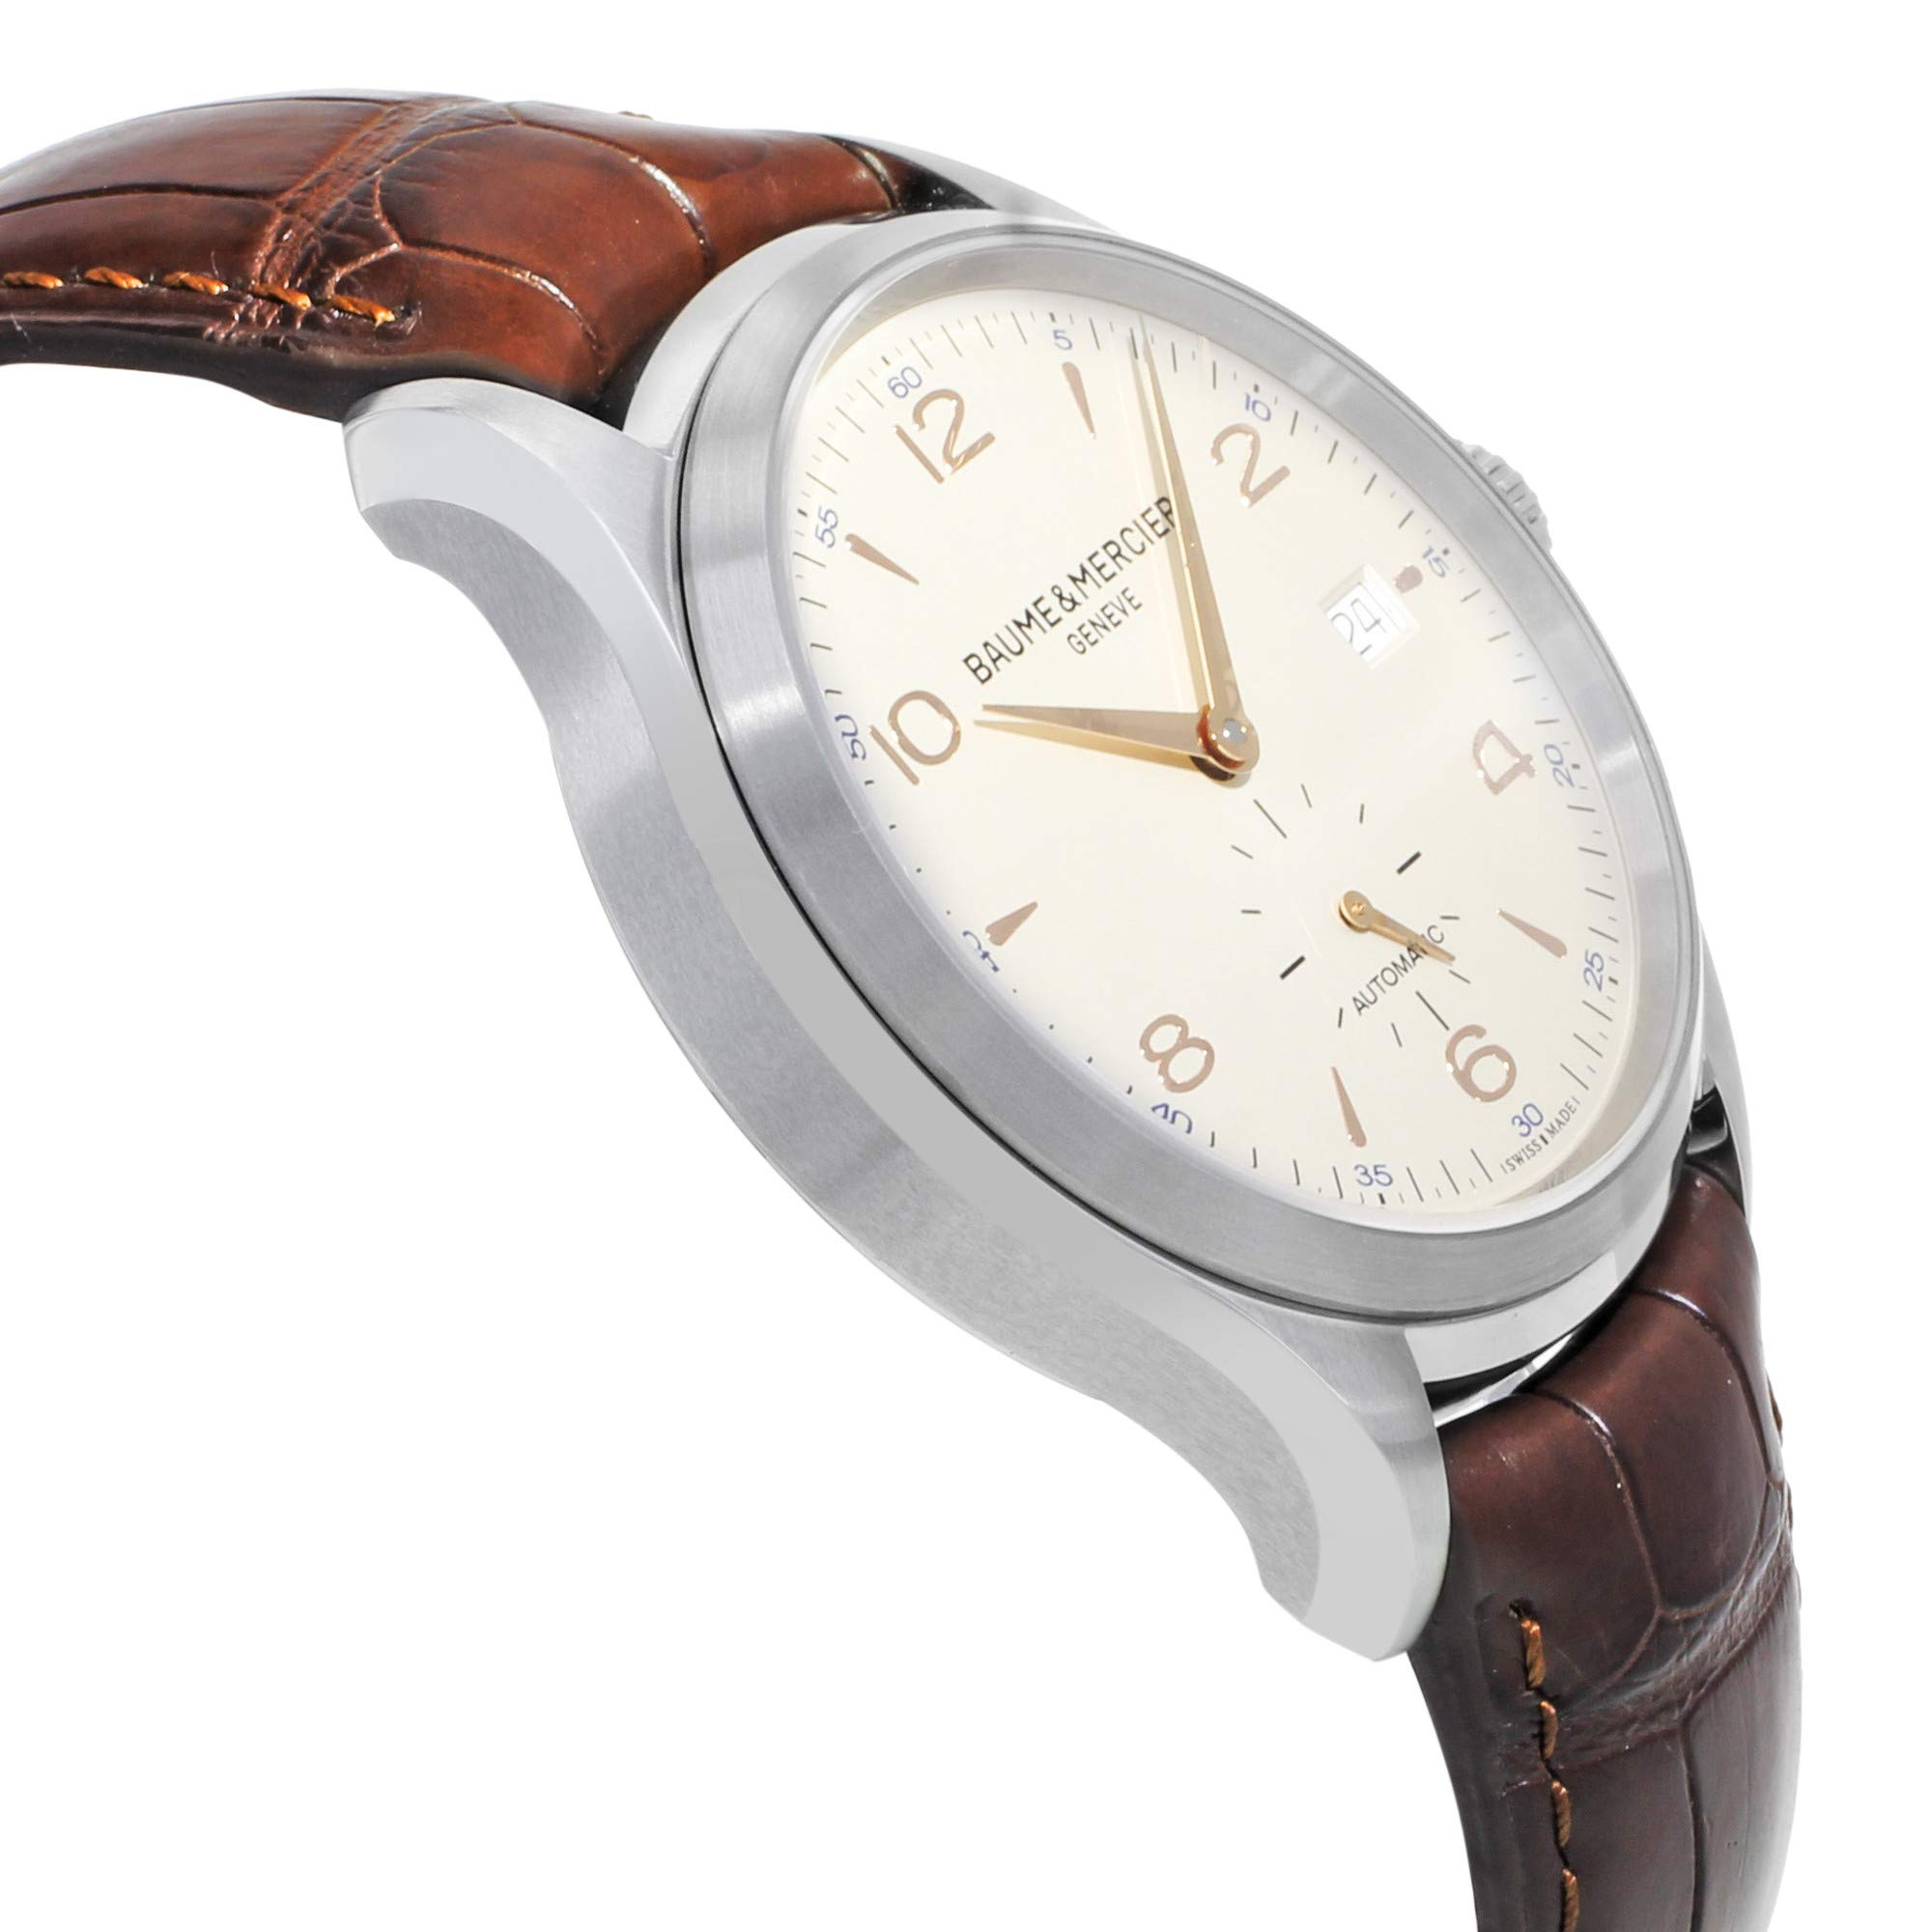 Baume & Mercier Clifton Automatic-self-Wind Male Watch MOA10054 (Certified Pre-Owned) by Baume & Mercier (Image #4)